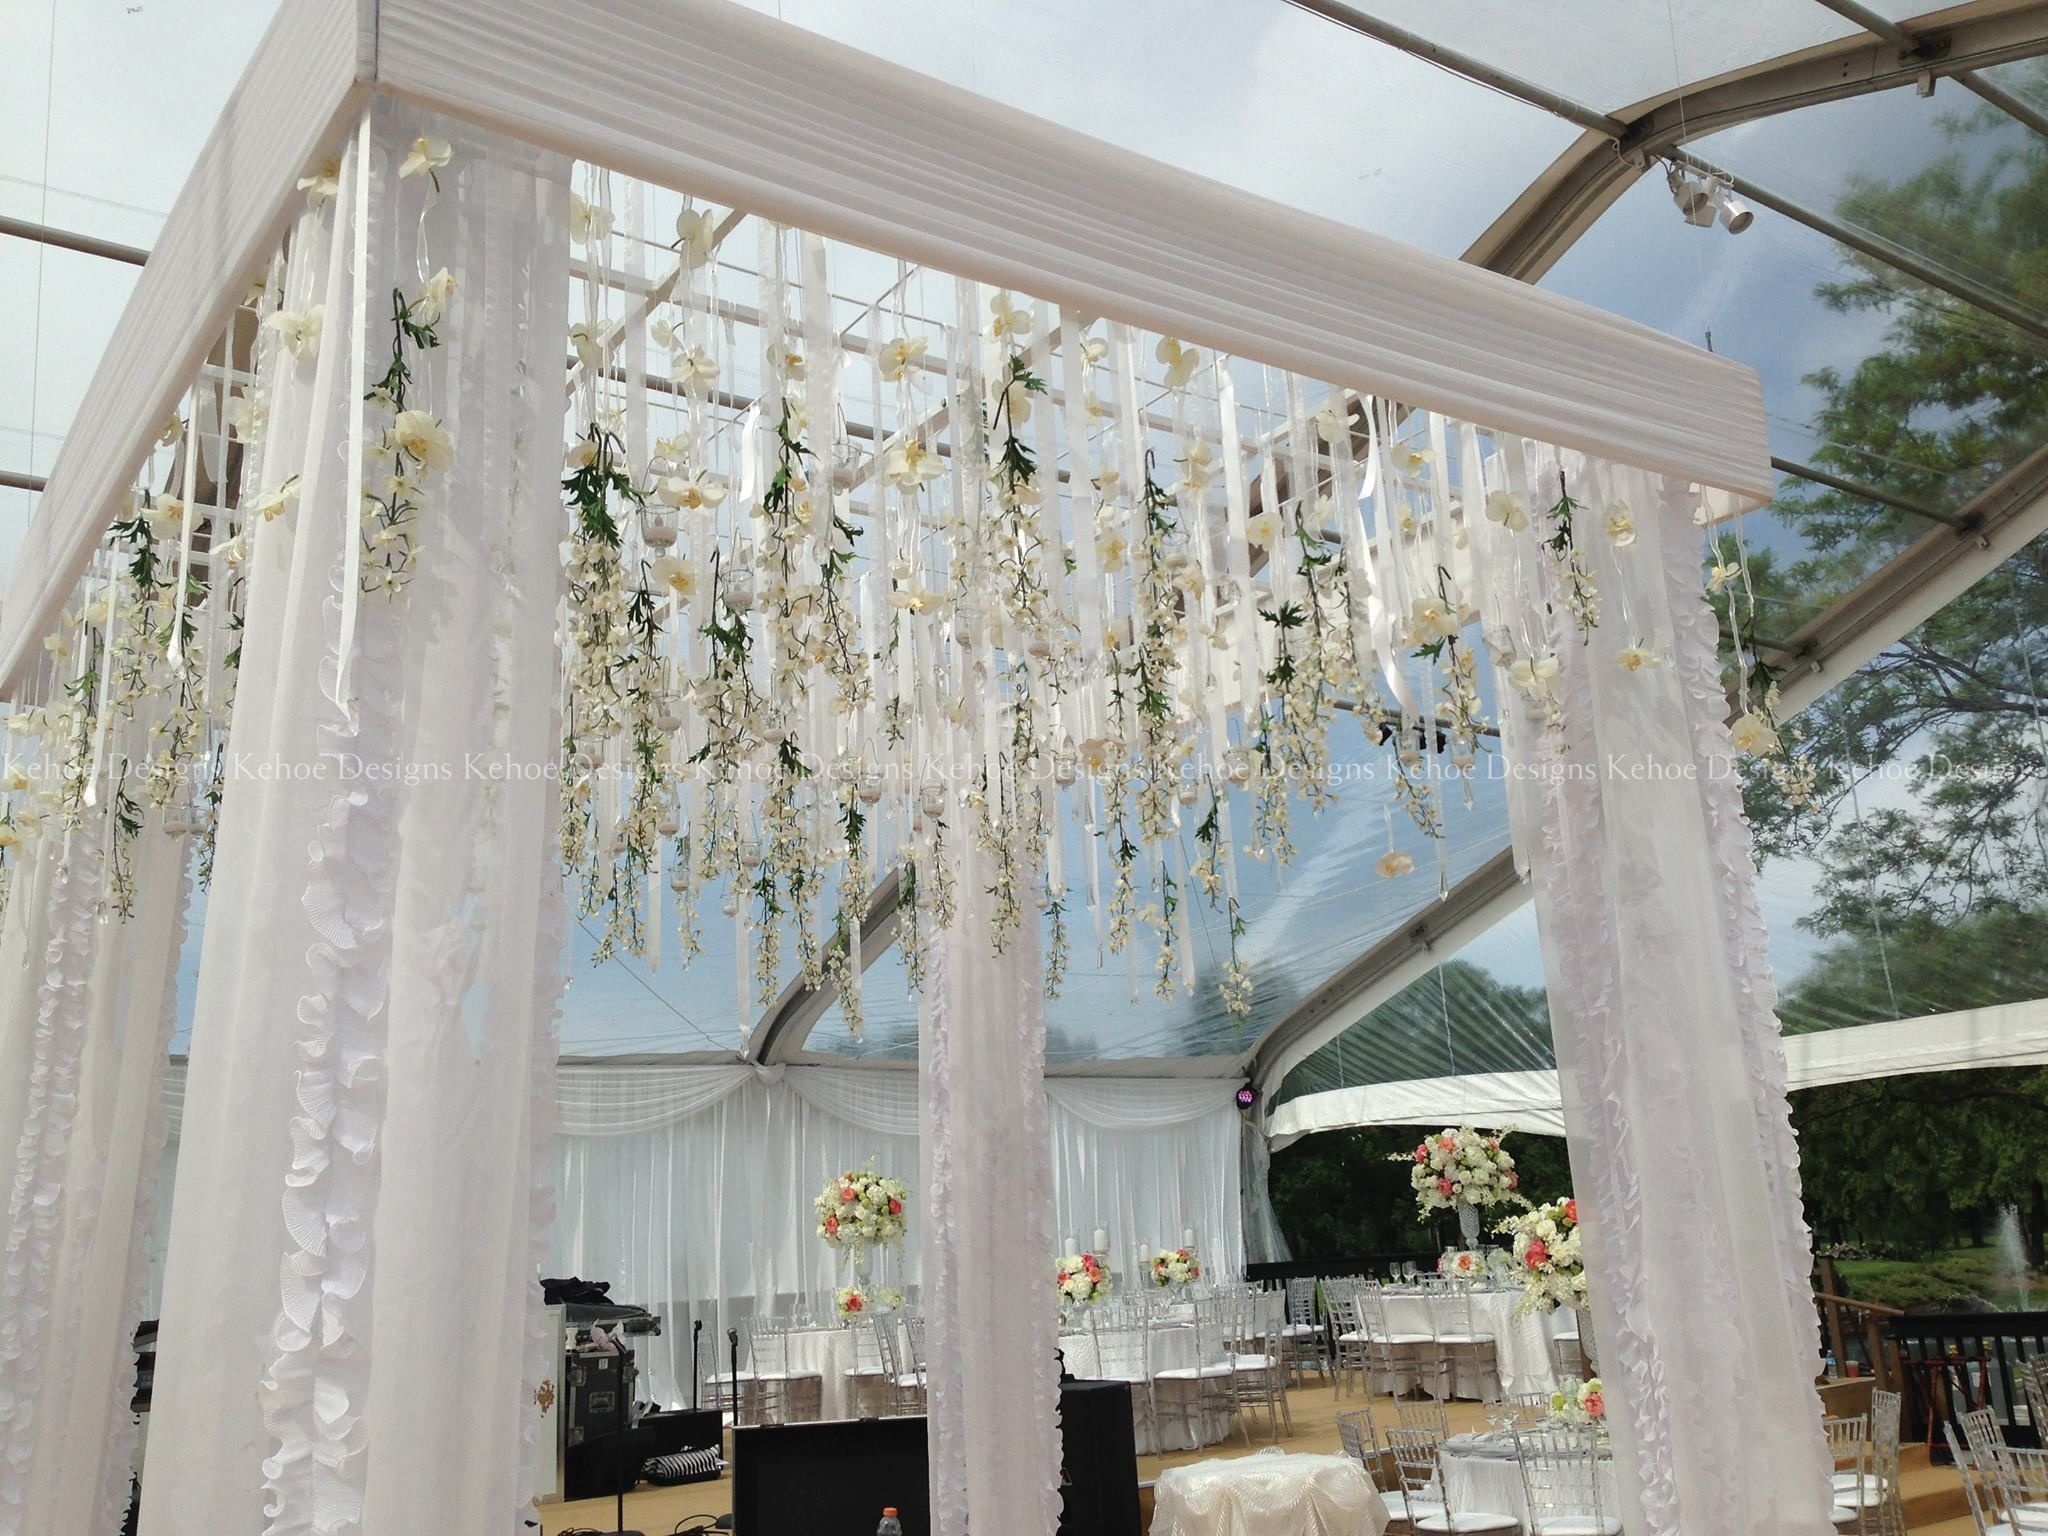 Square Gazebo With Fabric And Hanging Floral Gazebo Wedding